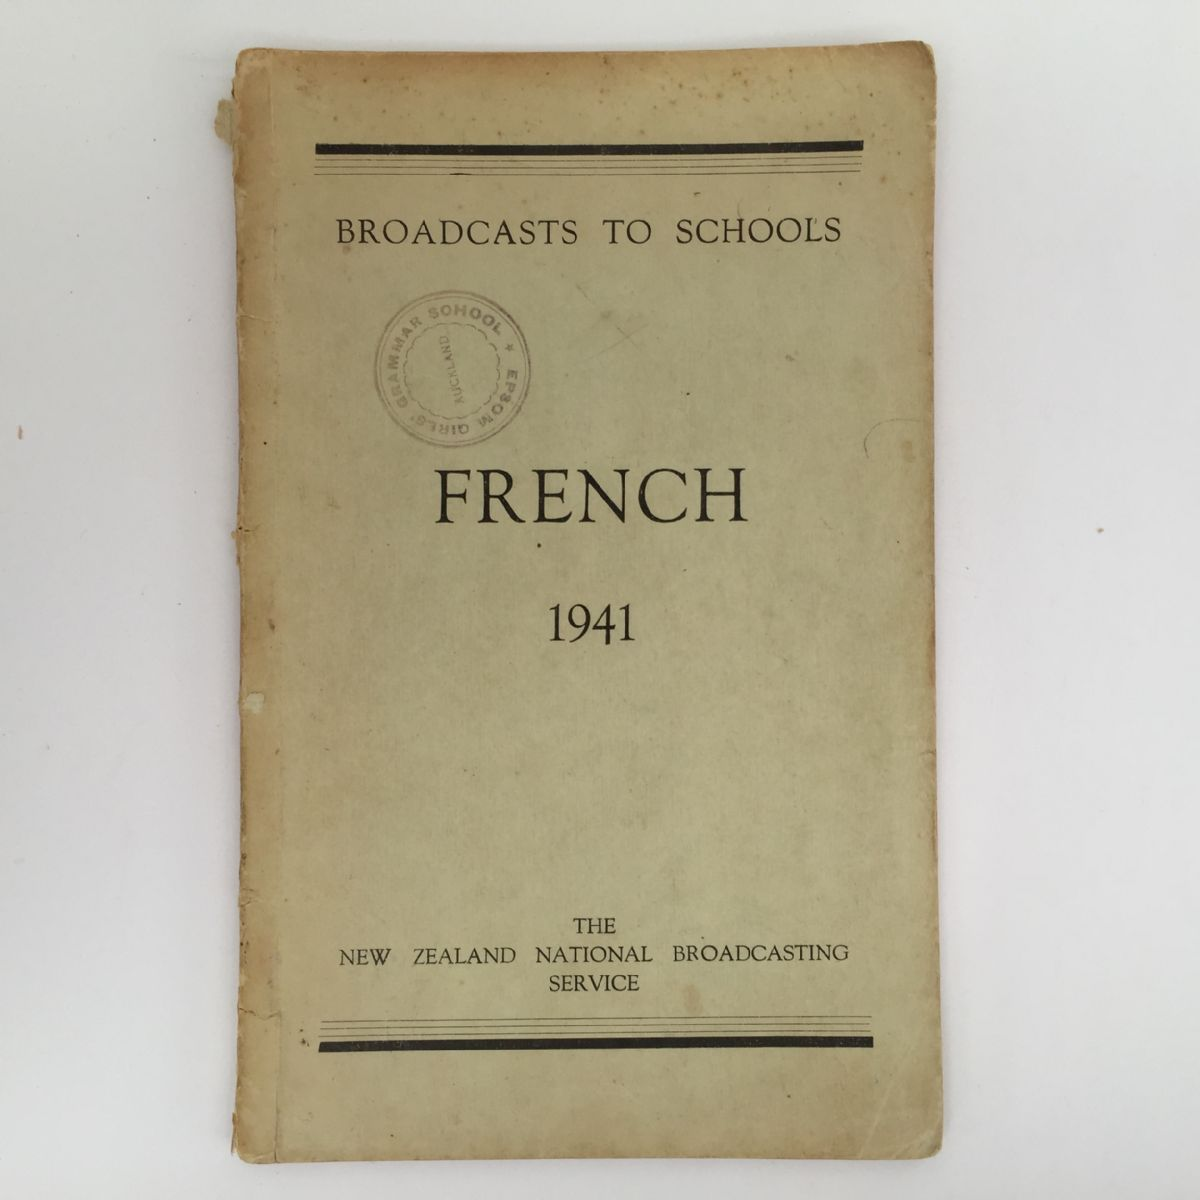 French 1941 Broadcasts to Schools